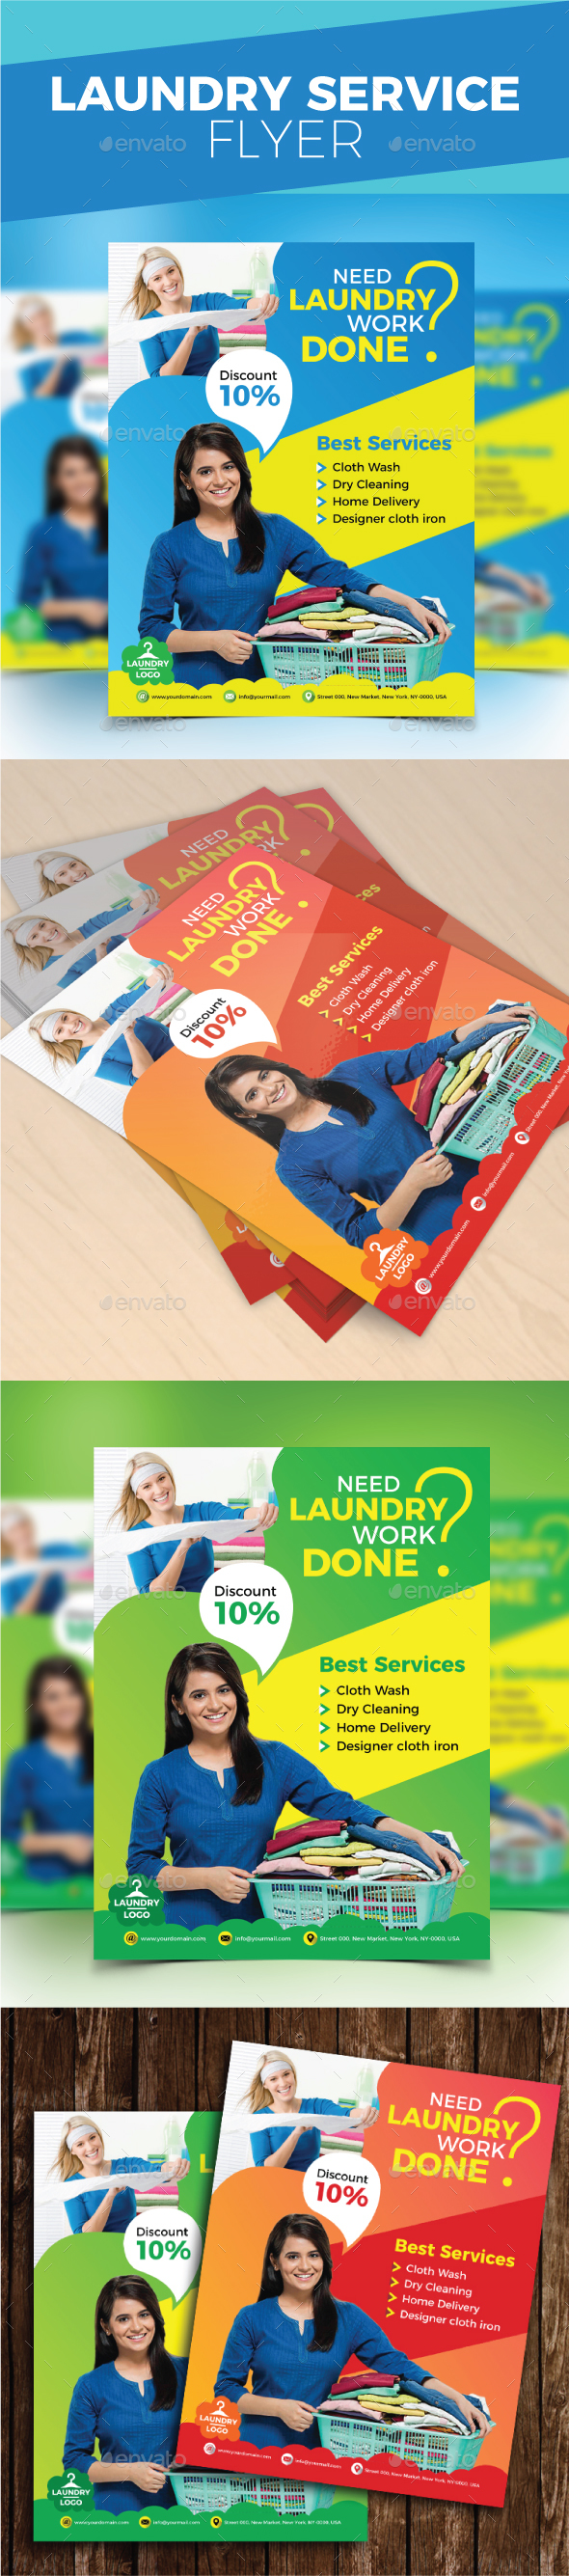 Laundry Service Flyer - Commerce Flyers